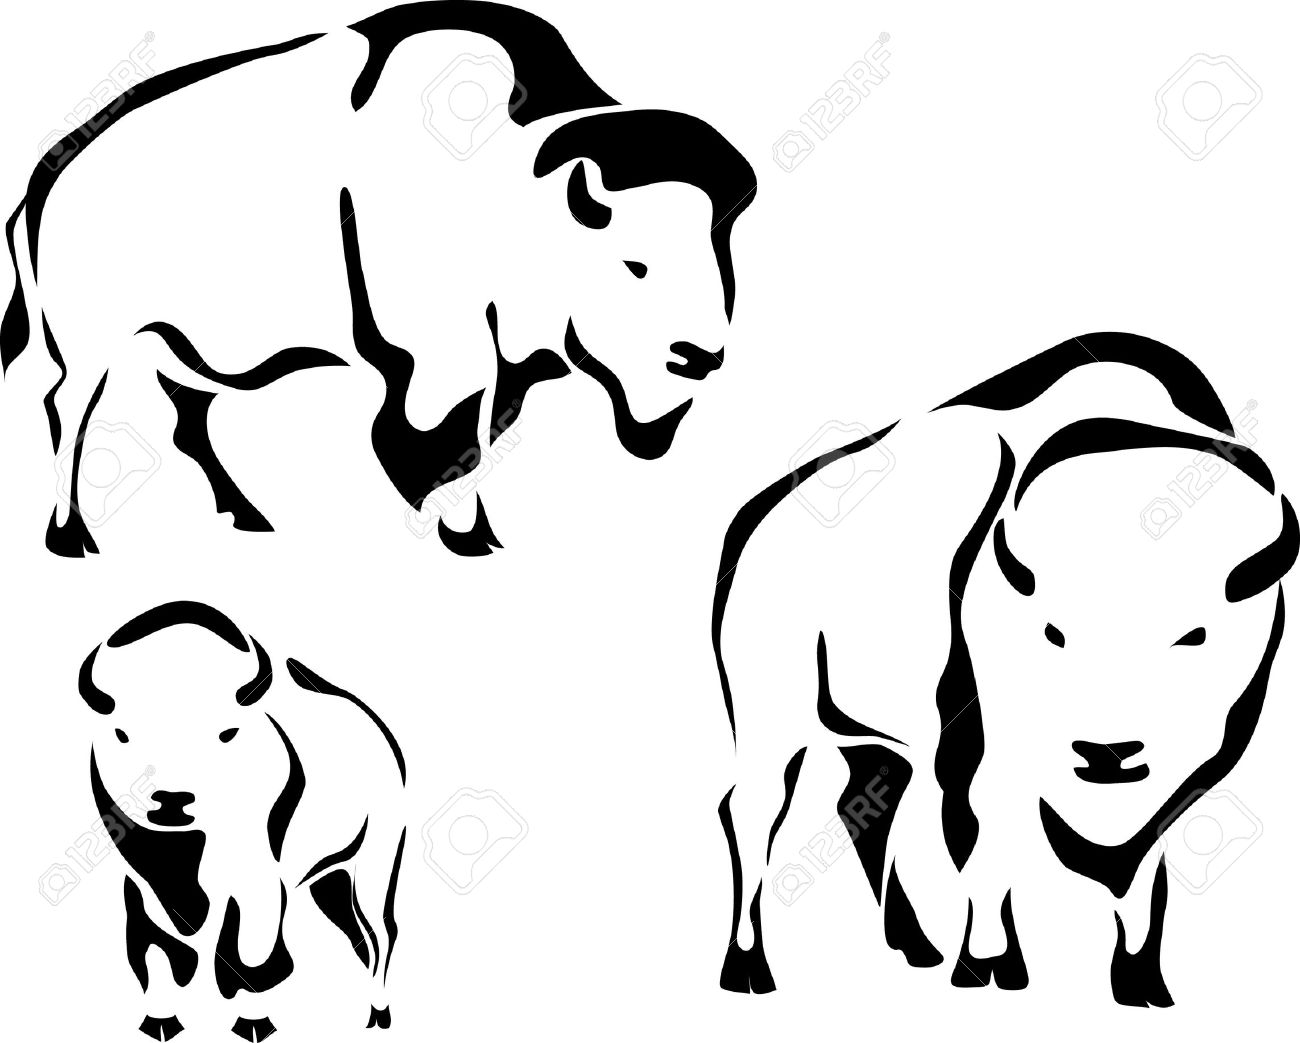 Bison clipart buffalo head Search images tribal Search bison